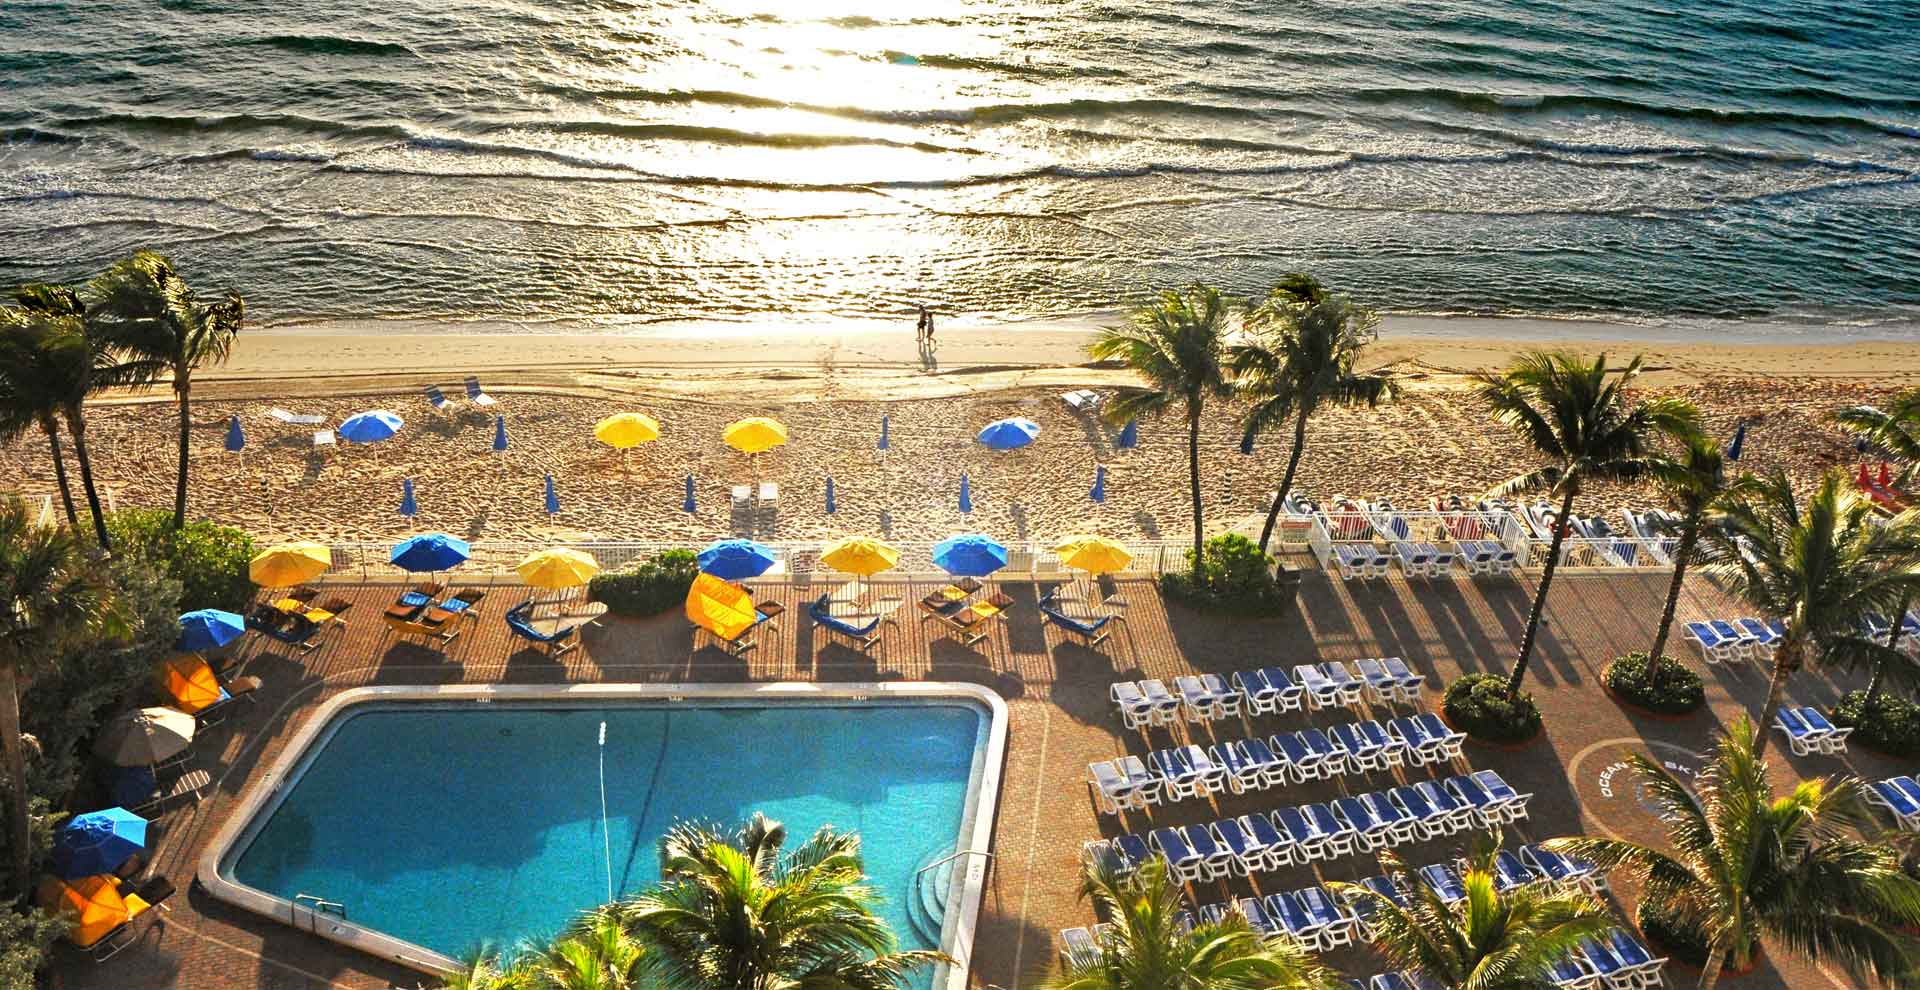 Ft. Lauderdale Beach Vacations